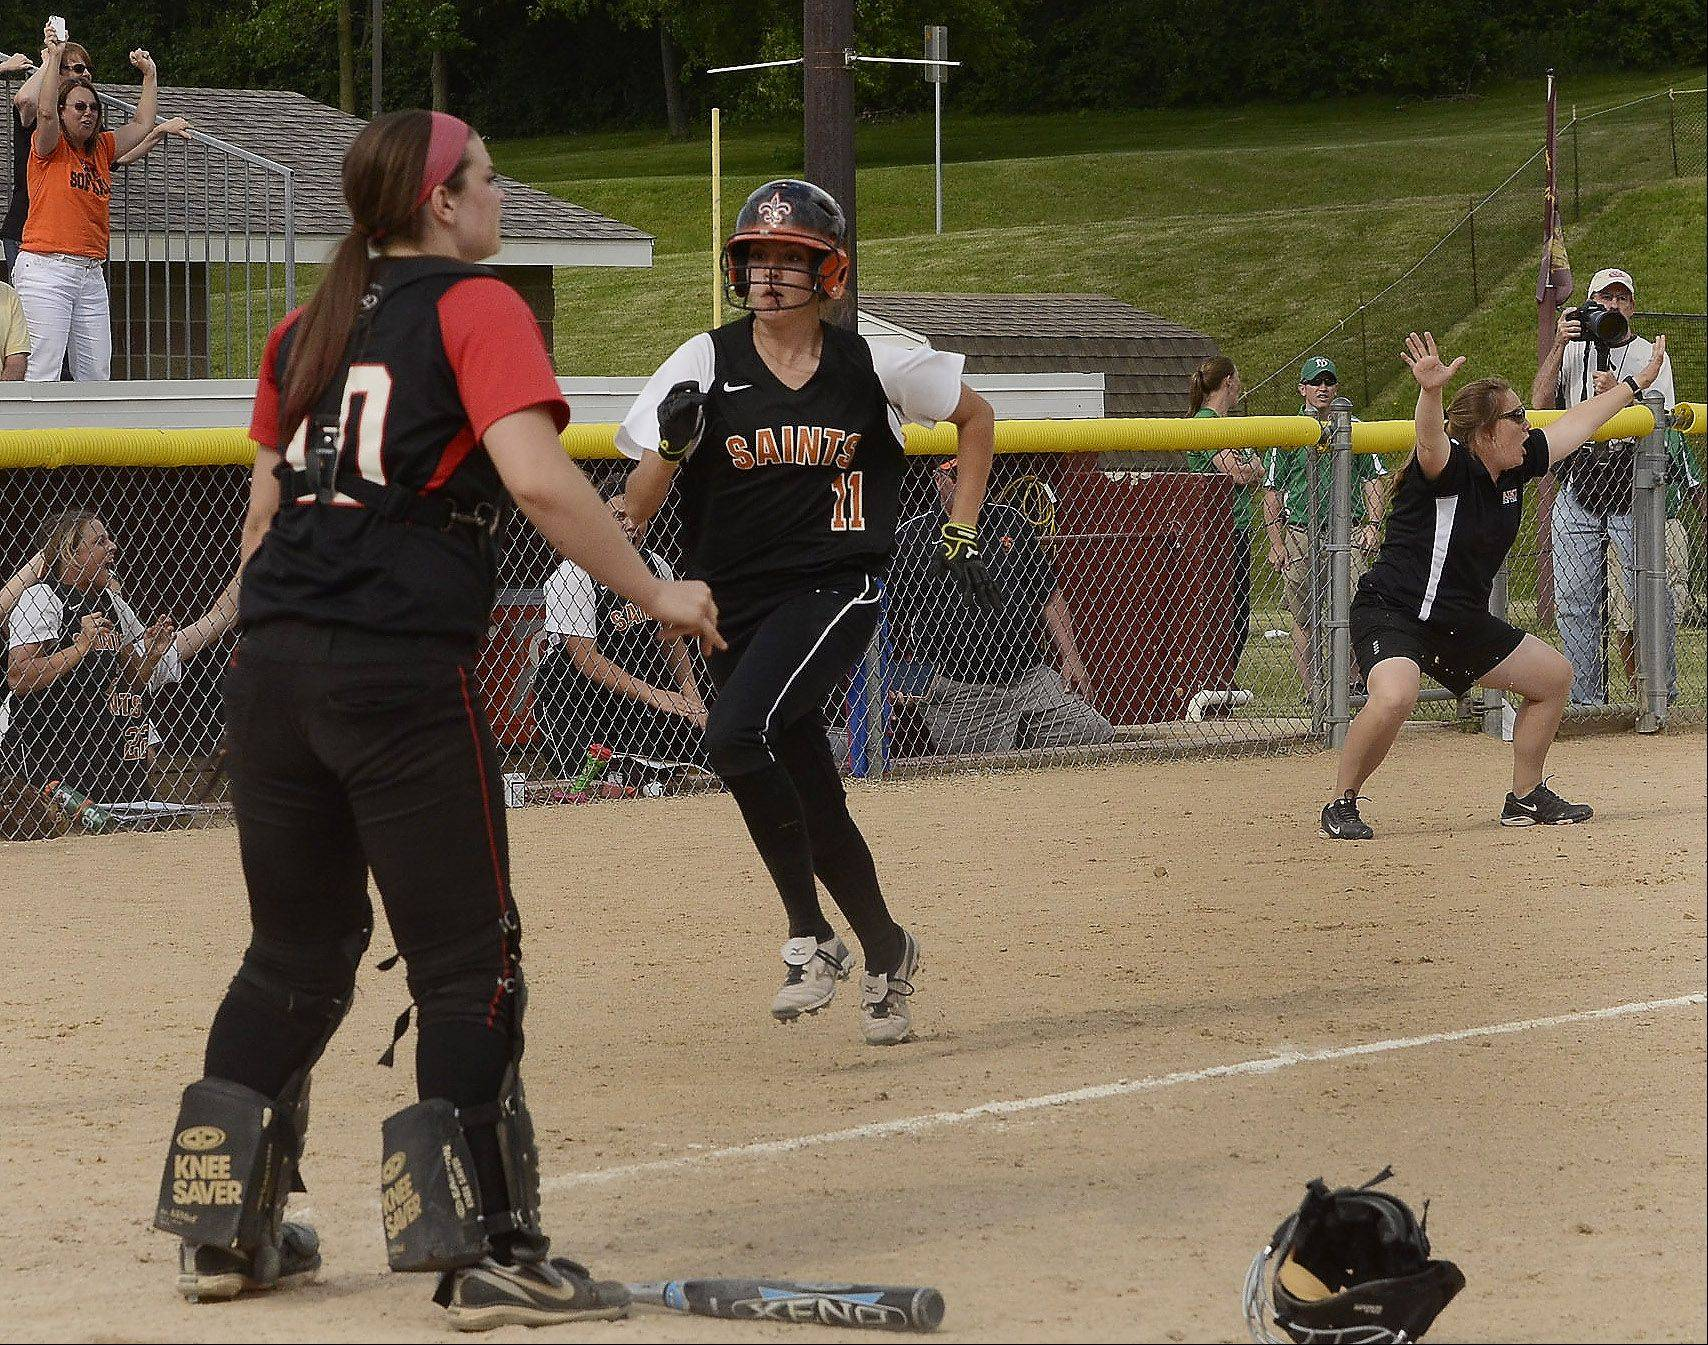 Tess Hupe of St. Charles East streaks home with the game winning run in the bottom of the seventh inning on a 2-run double by Olivia Lorenzini in the Class 4A state semifinals Friday.